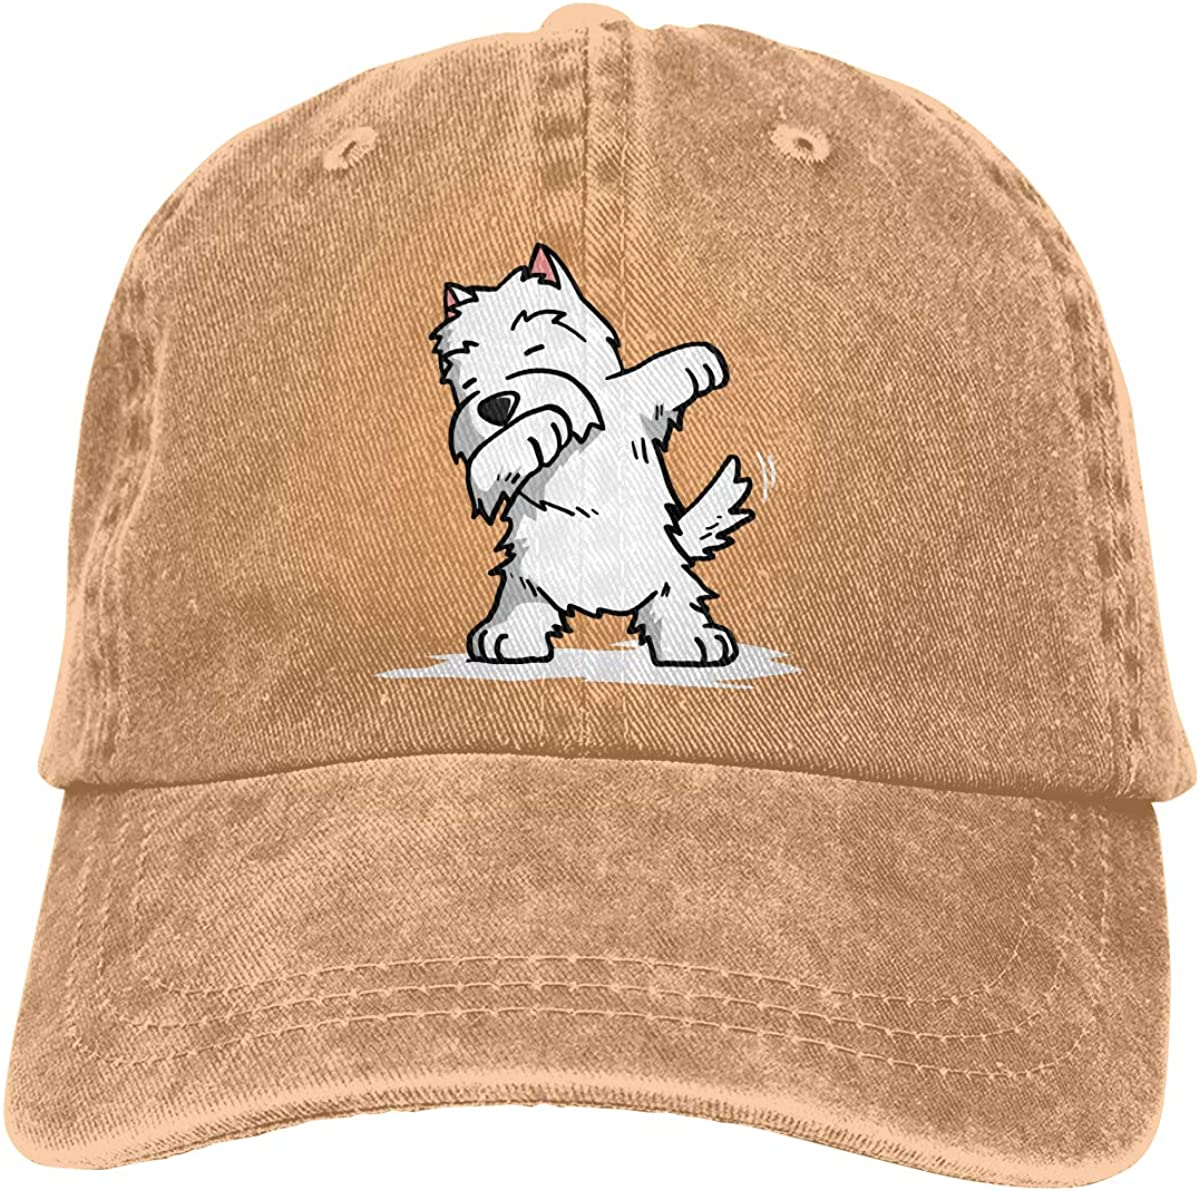 XZFQW Funny Dabbing West Highland White Terrie Trend Printing Cowboy Hat Fashion Baseball Cap for Men and Women Black